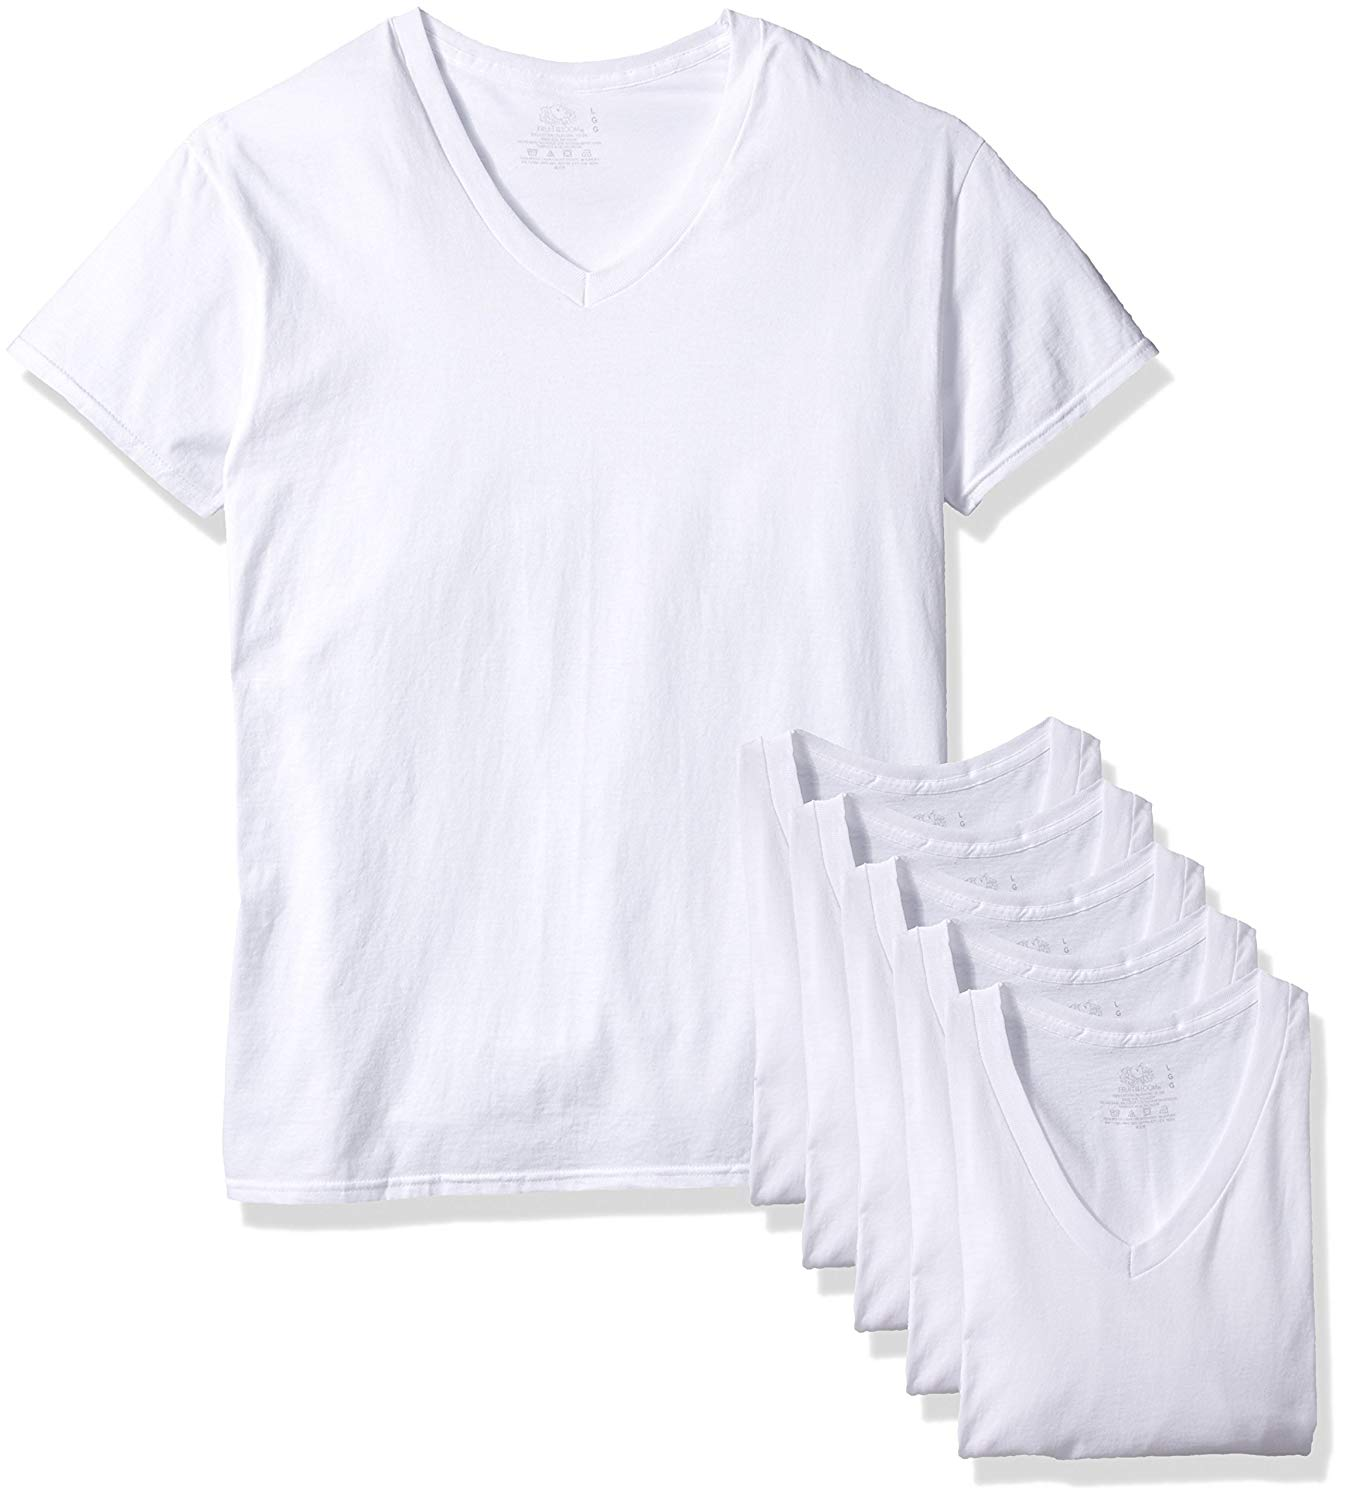 b3dd3add Get Quotations · Fruit of the Loom Men's White V-Neck T-Shirts 6-Pack  5P2525V